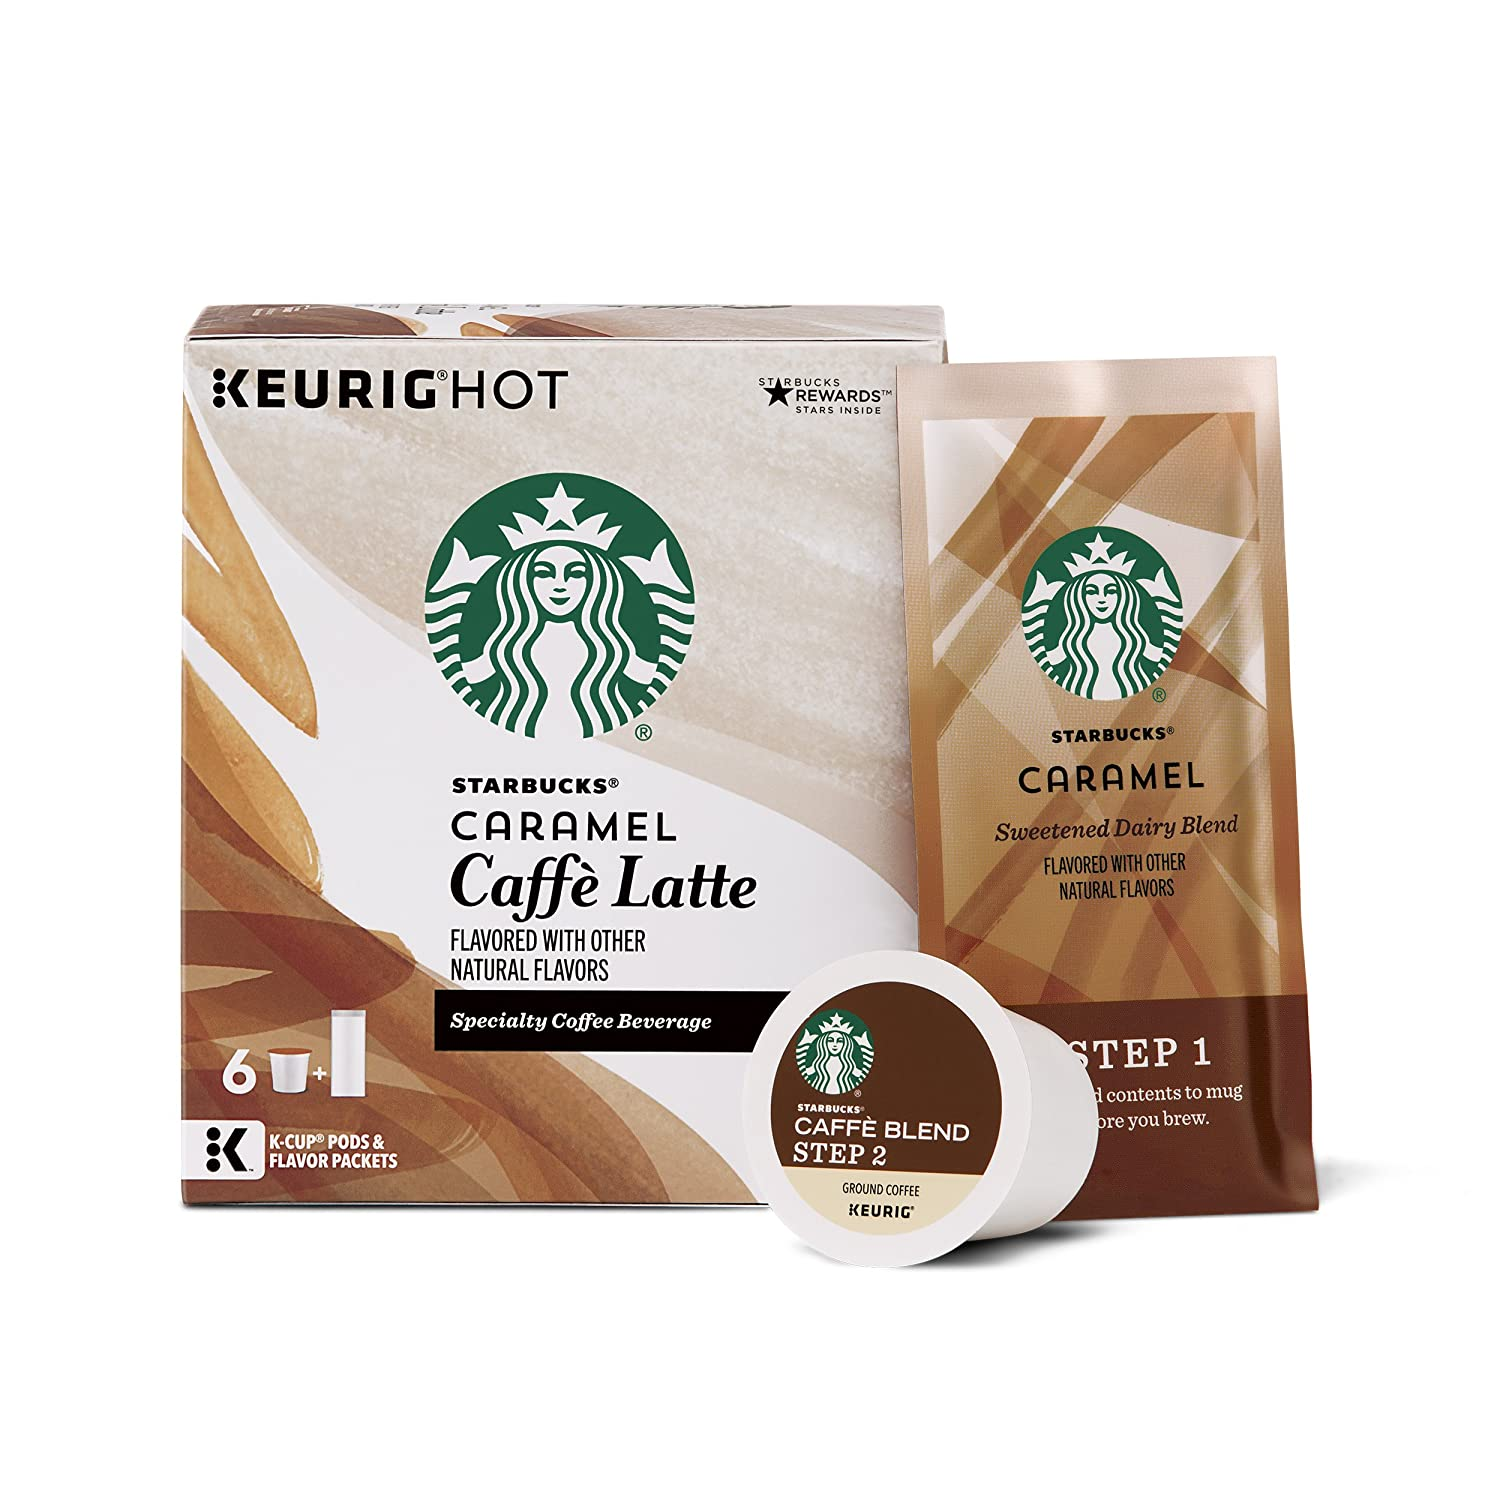 Starbucks Caramel Caffè Latte Medium Roast Single Cup Coffee for Keurig Brewers, 1 Box of 6 (6 Total K-Cup pods)